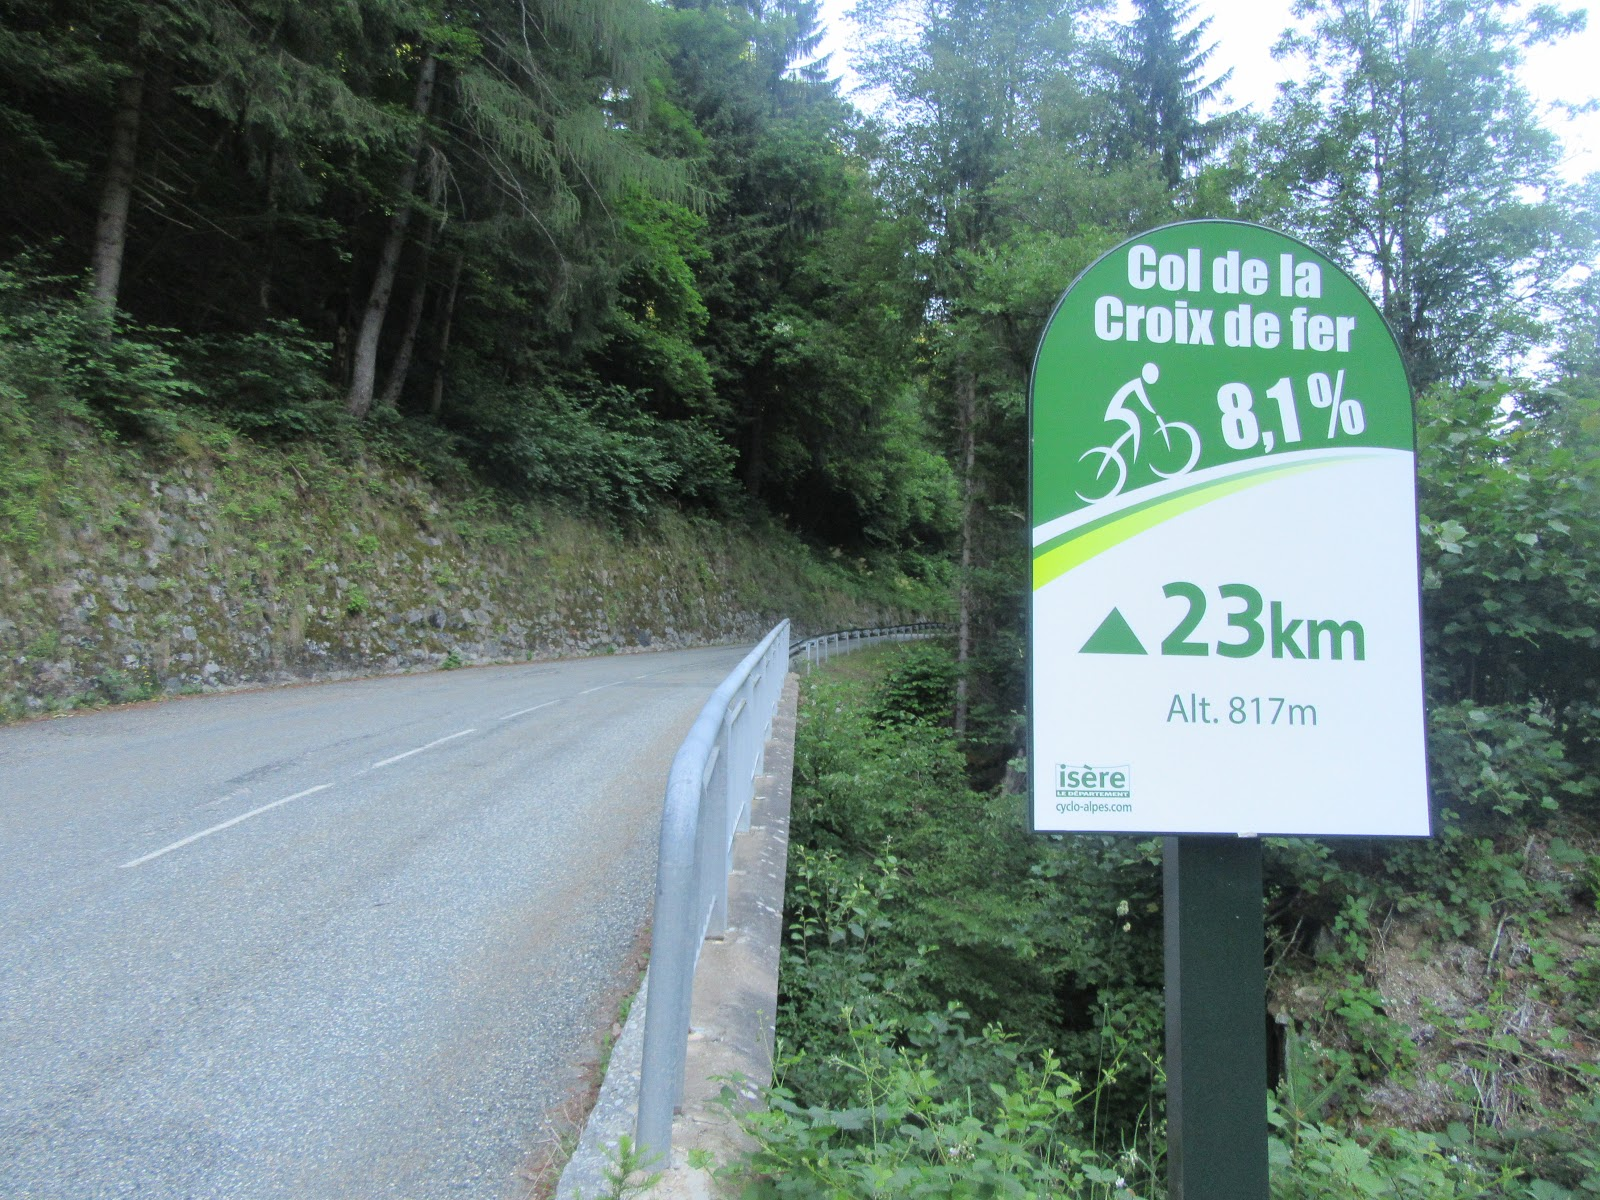 Bike climb of Col de la Croix de Fer, West  - km marker